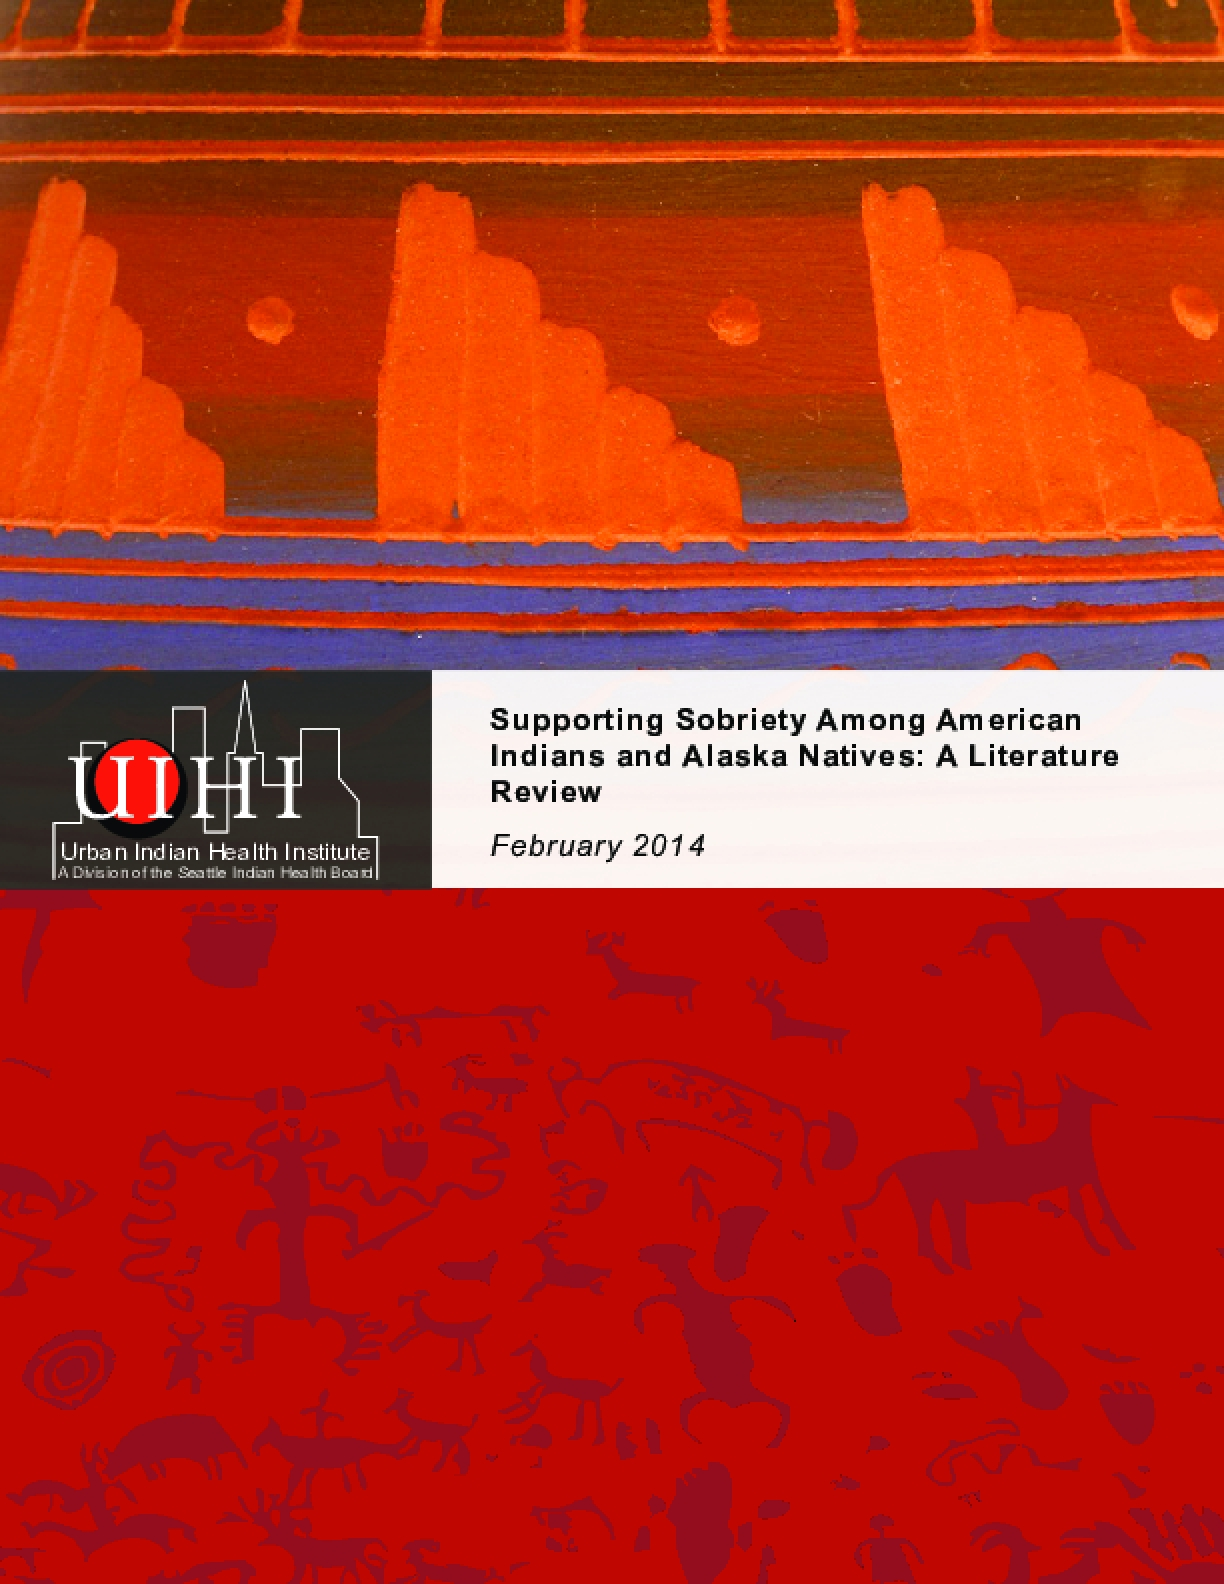 Supporting Sobriety Among American Indians and Alaska Natives: A Literature Review